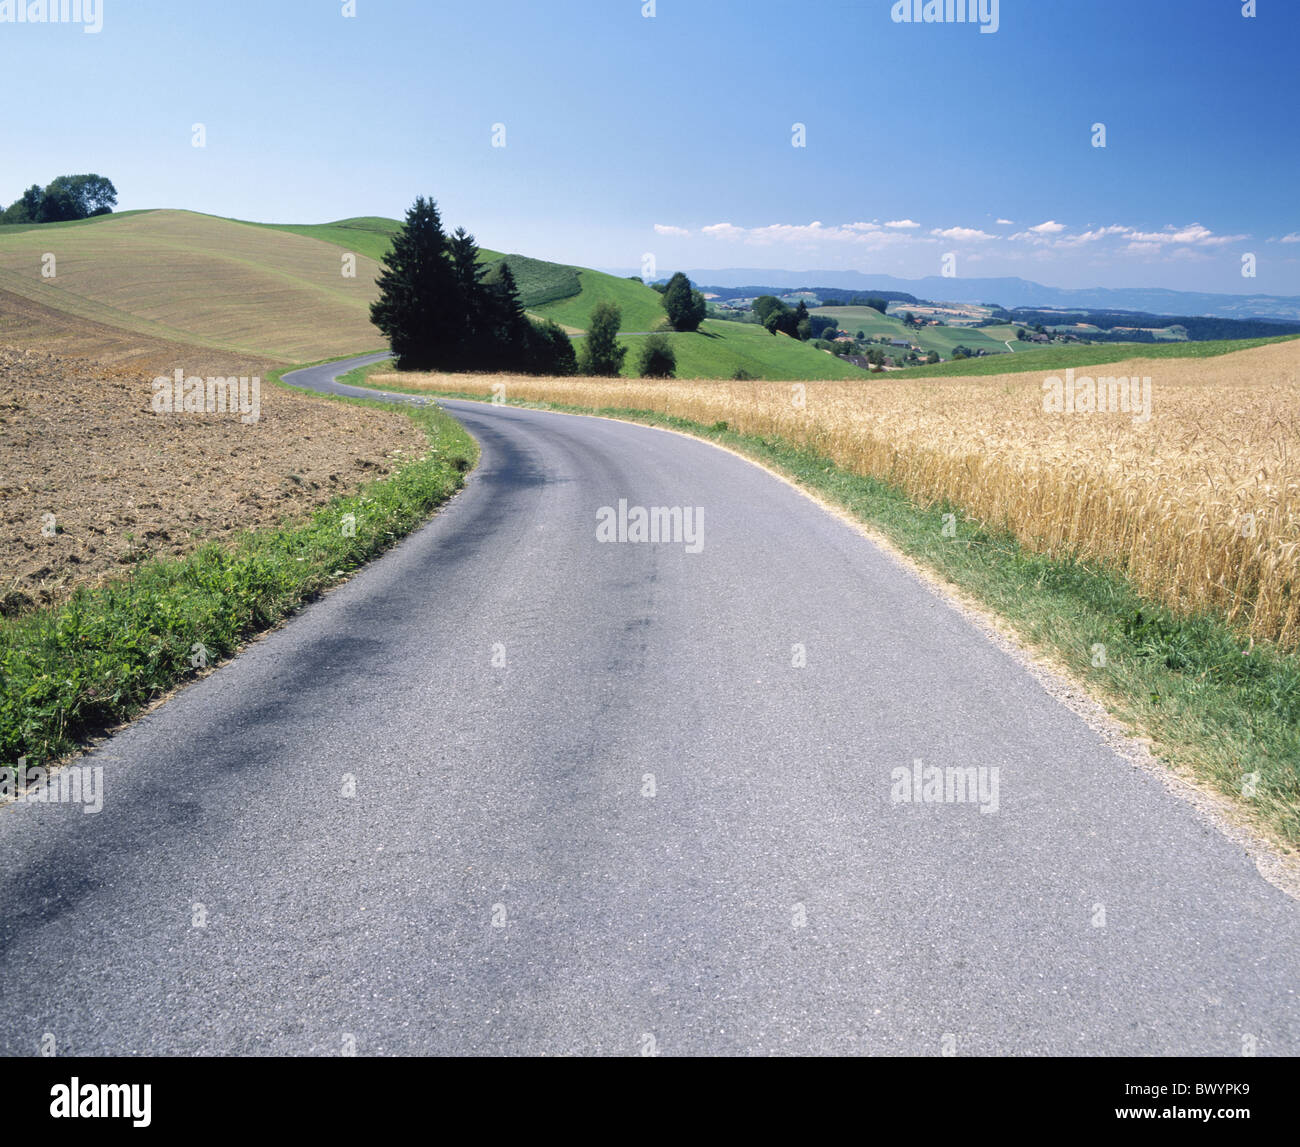 L'Emmenthal Eriswil collines champs canton de Berne country road street l'agriculture Suisse Europe street Photo Stock